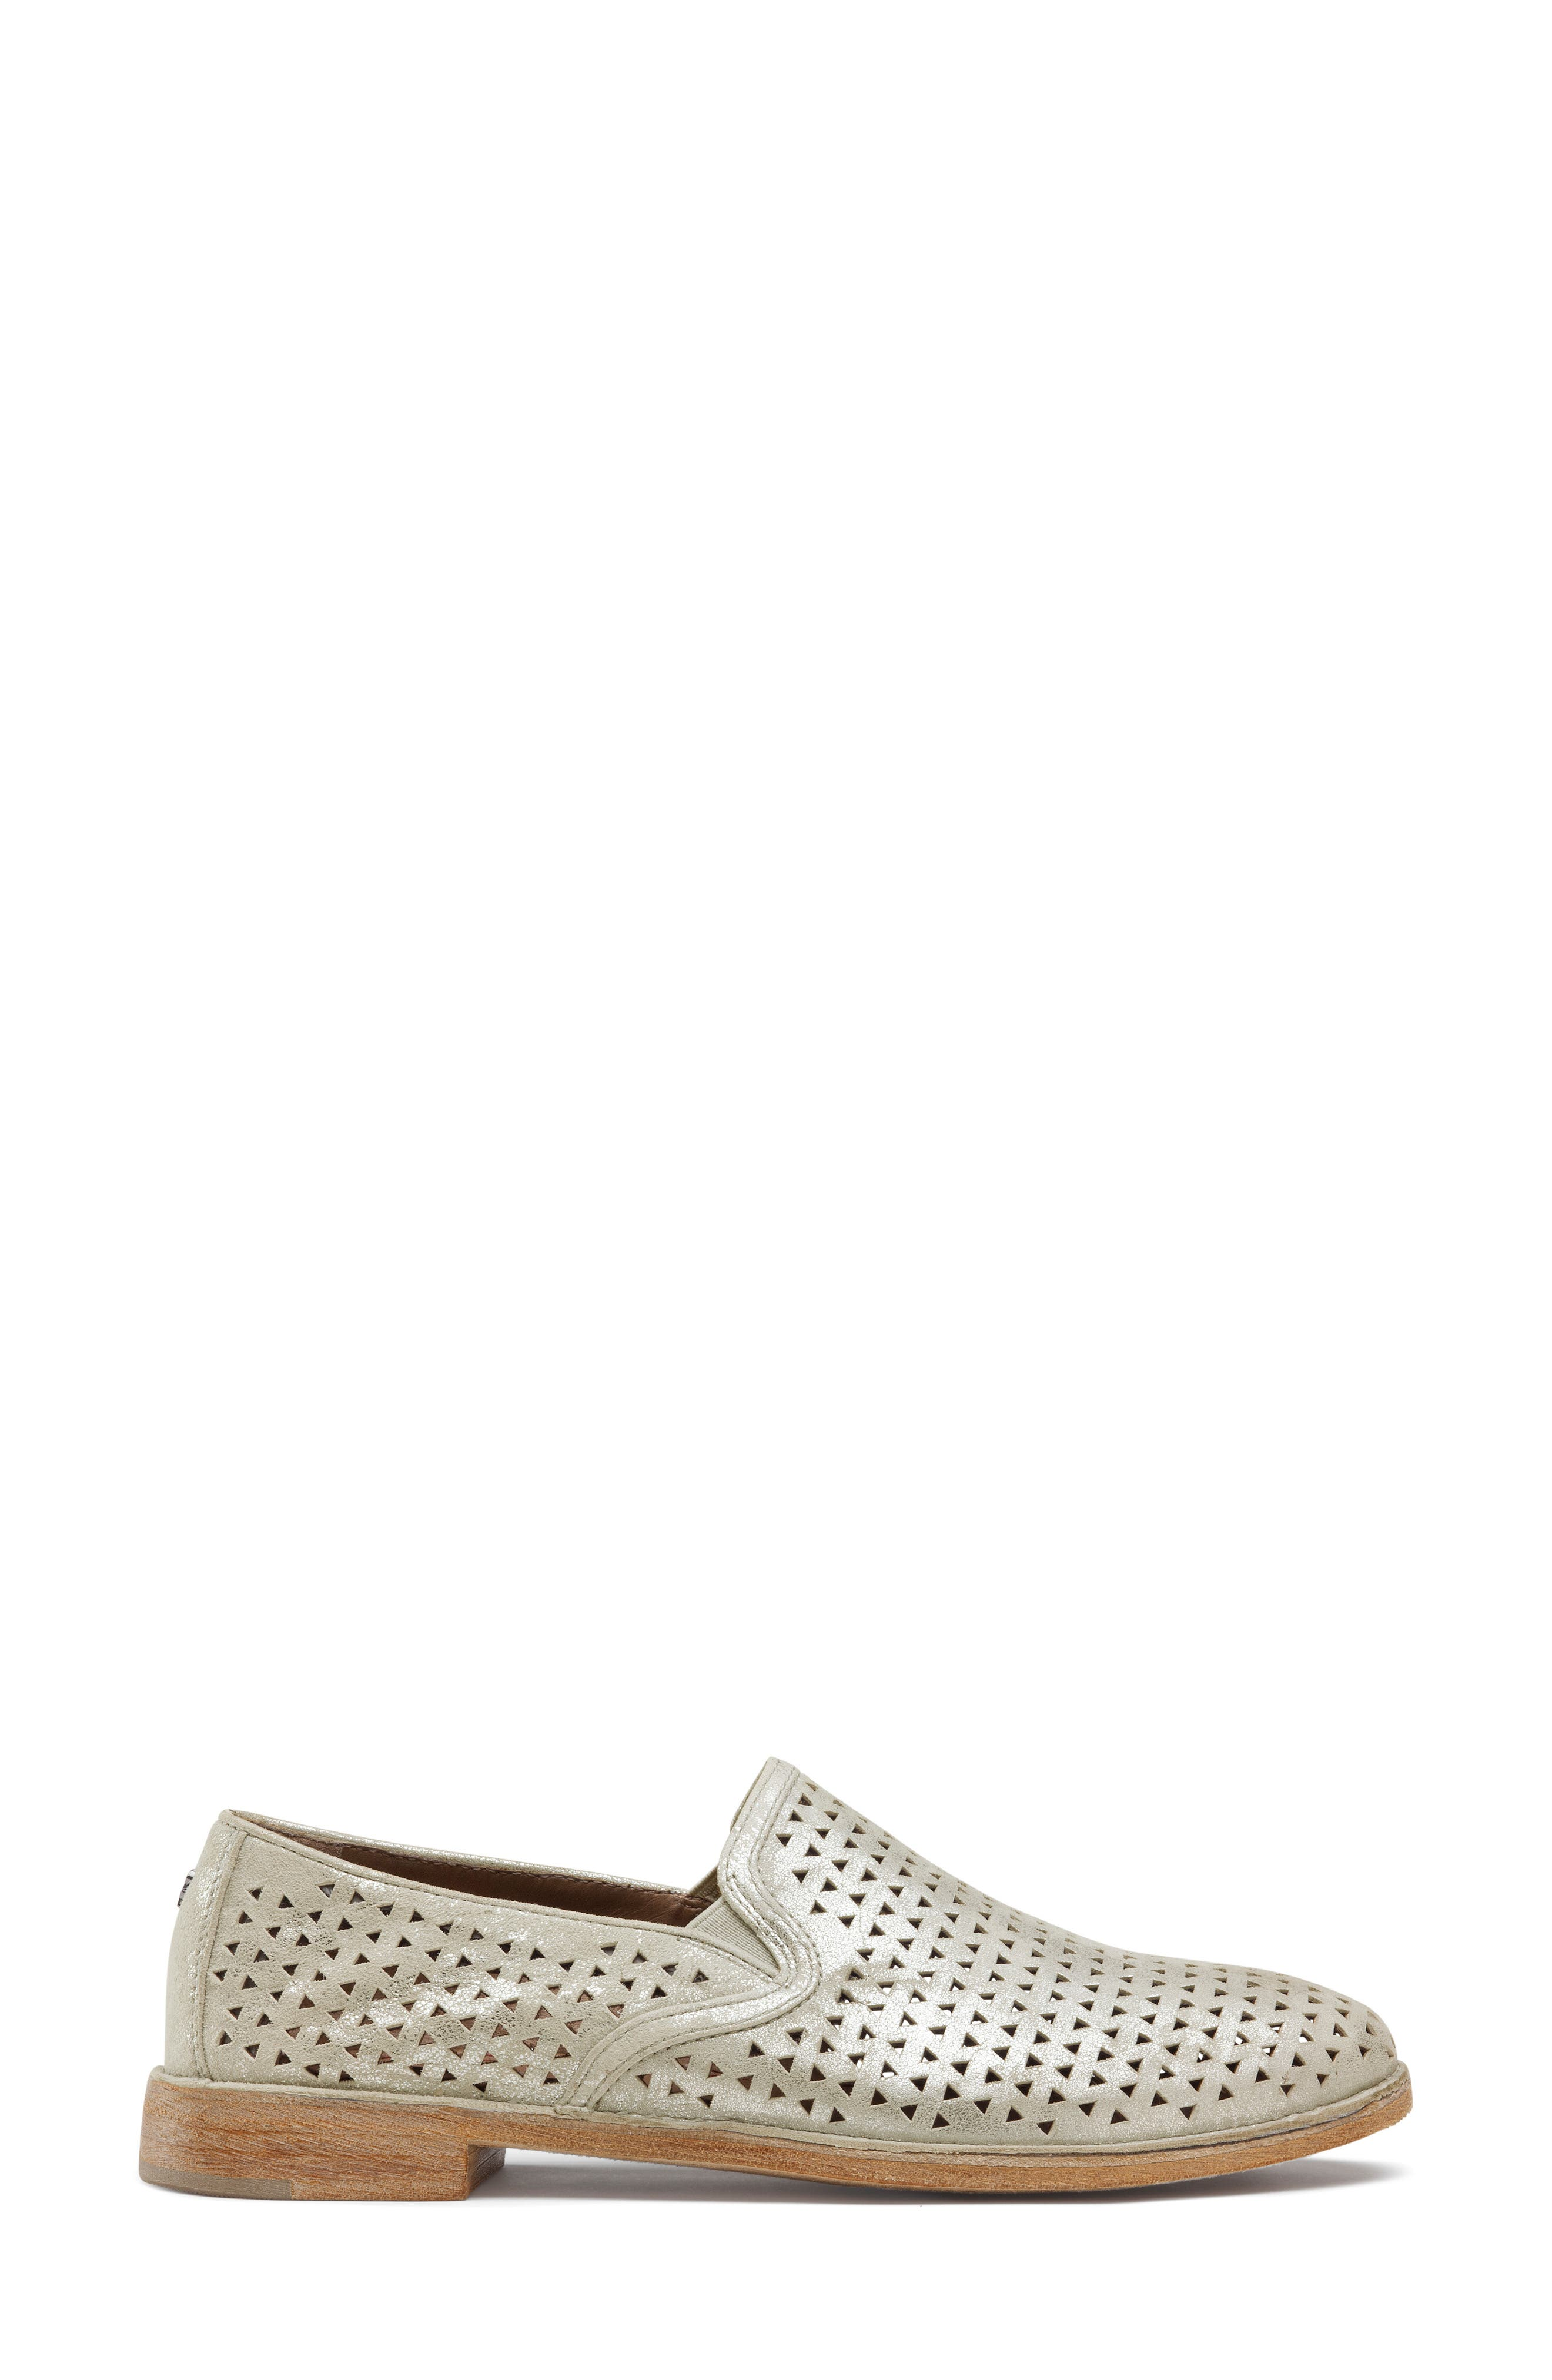 TRASK, Ali Perforated Loafer, Alternate thumbnail 3, color, IVORY METALLIC SUEDE